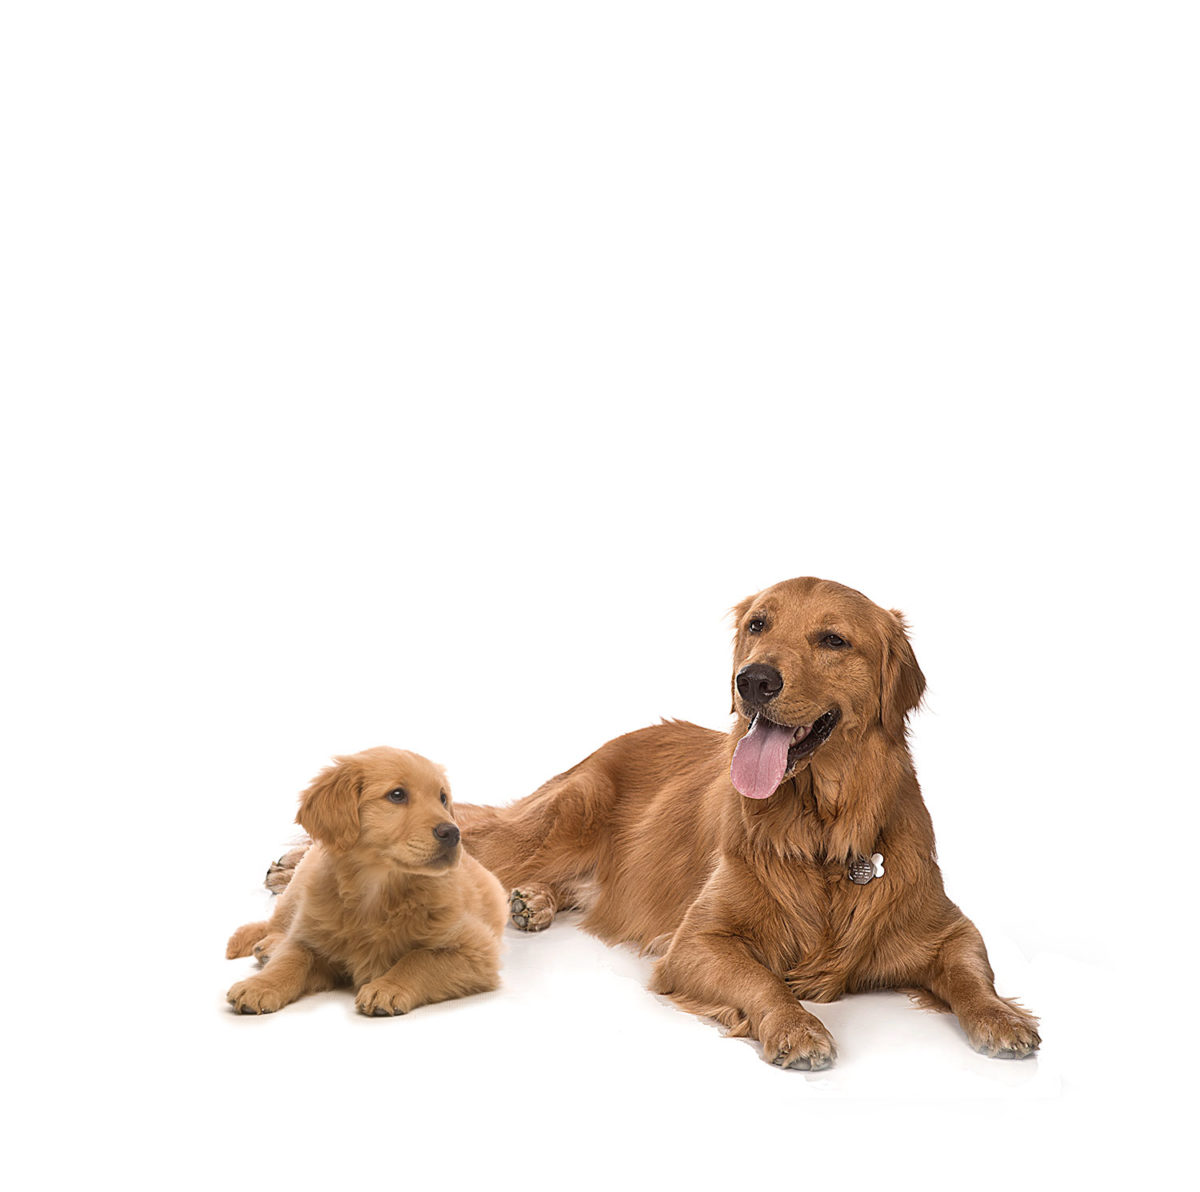 Puppy and adult golden retrievers